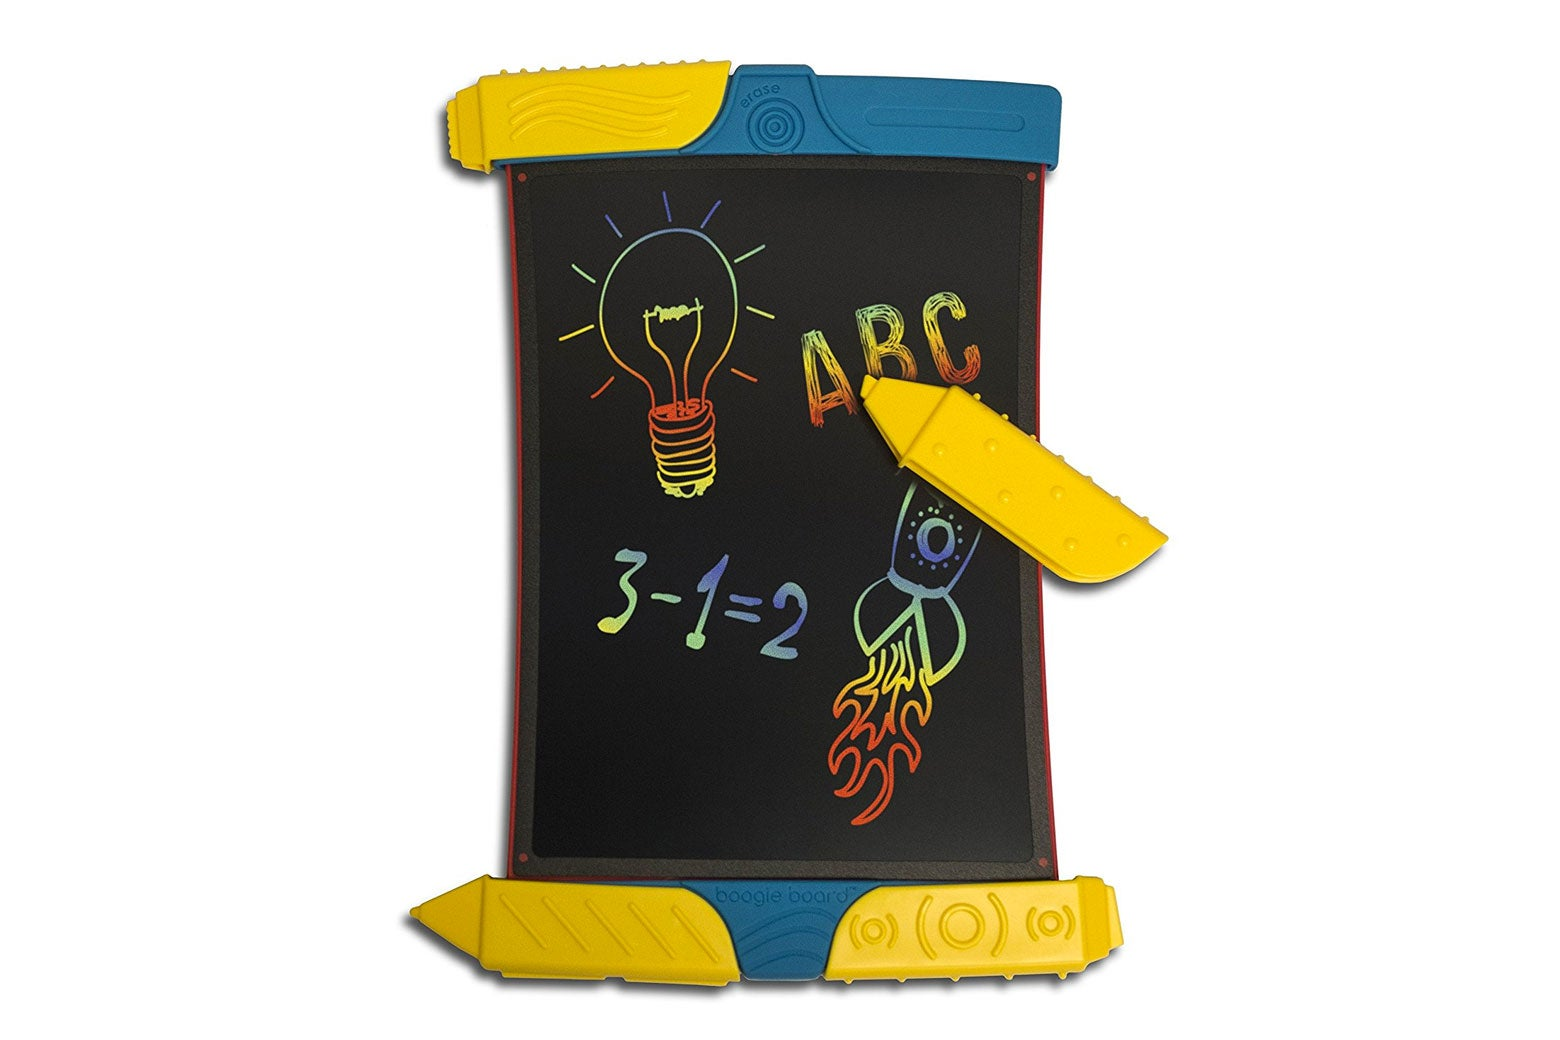 Boogie board erasable doodling tablet.